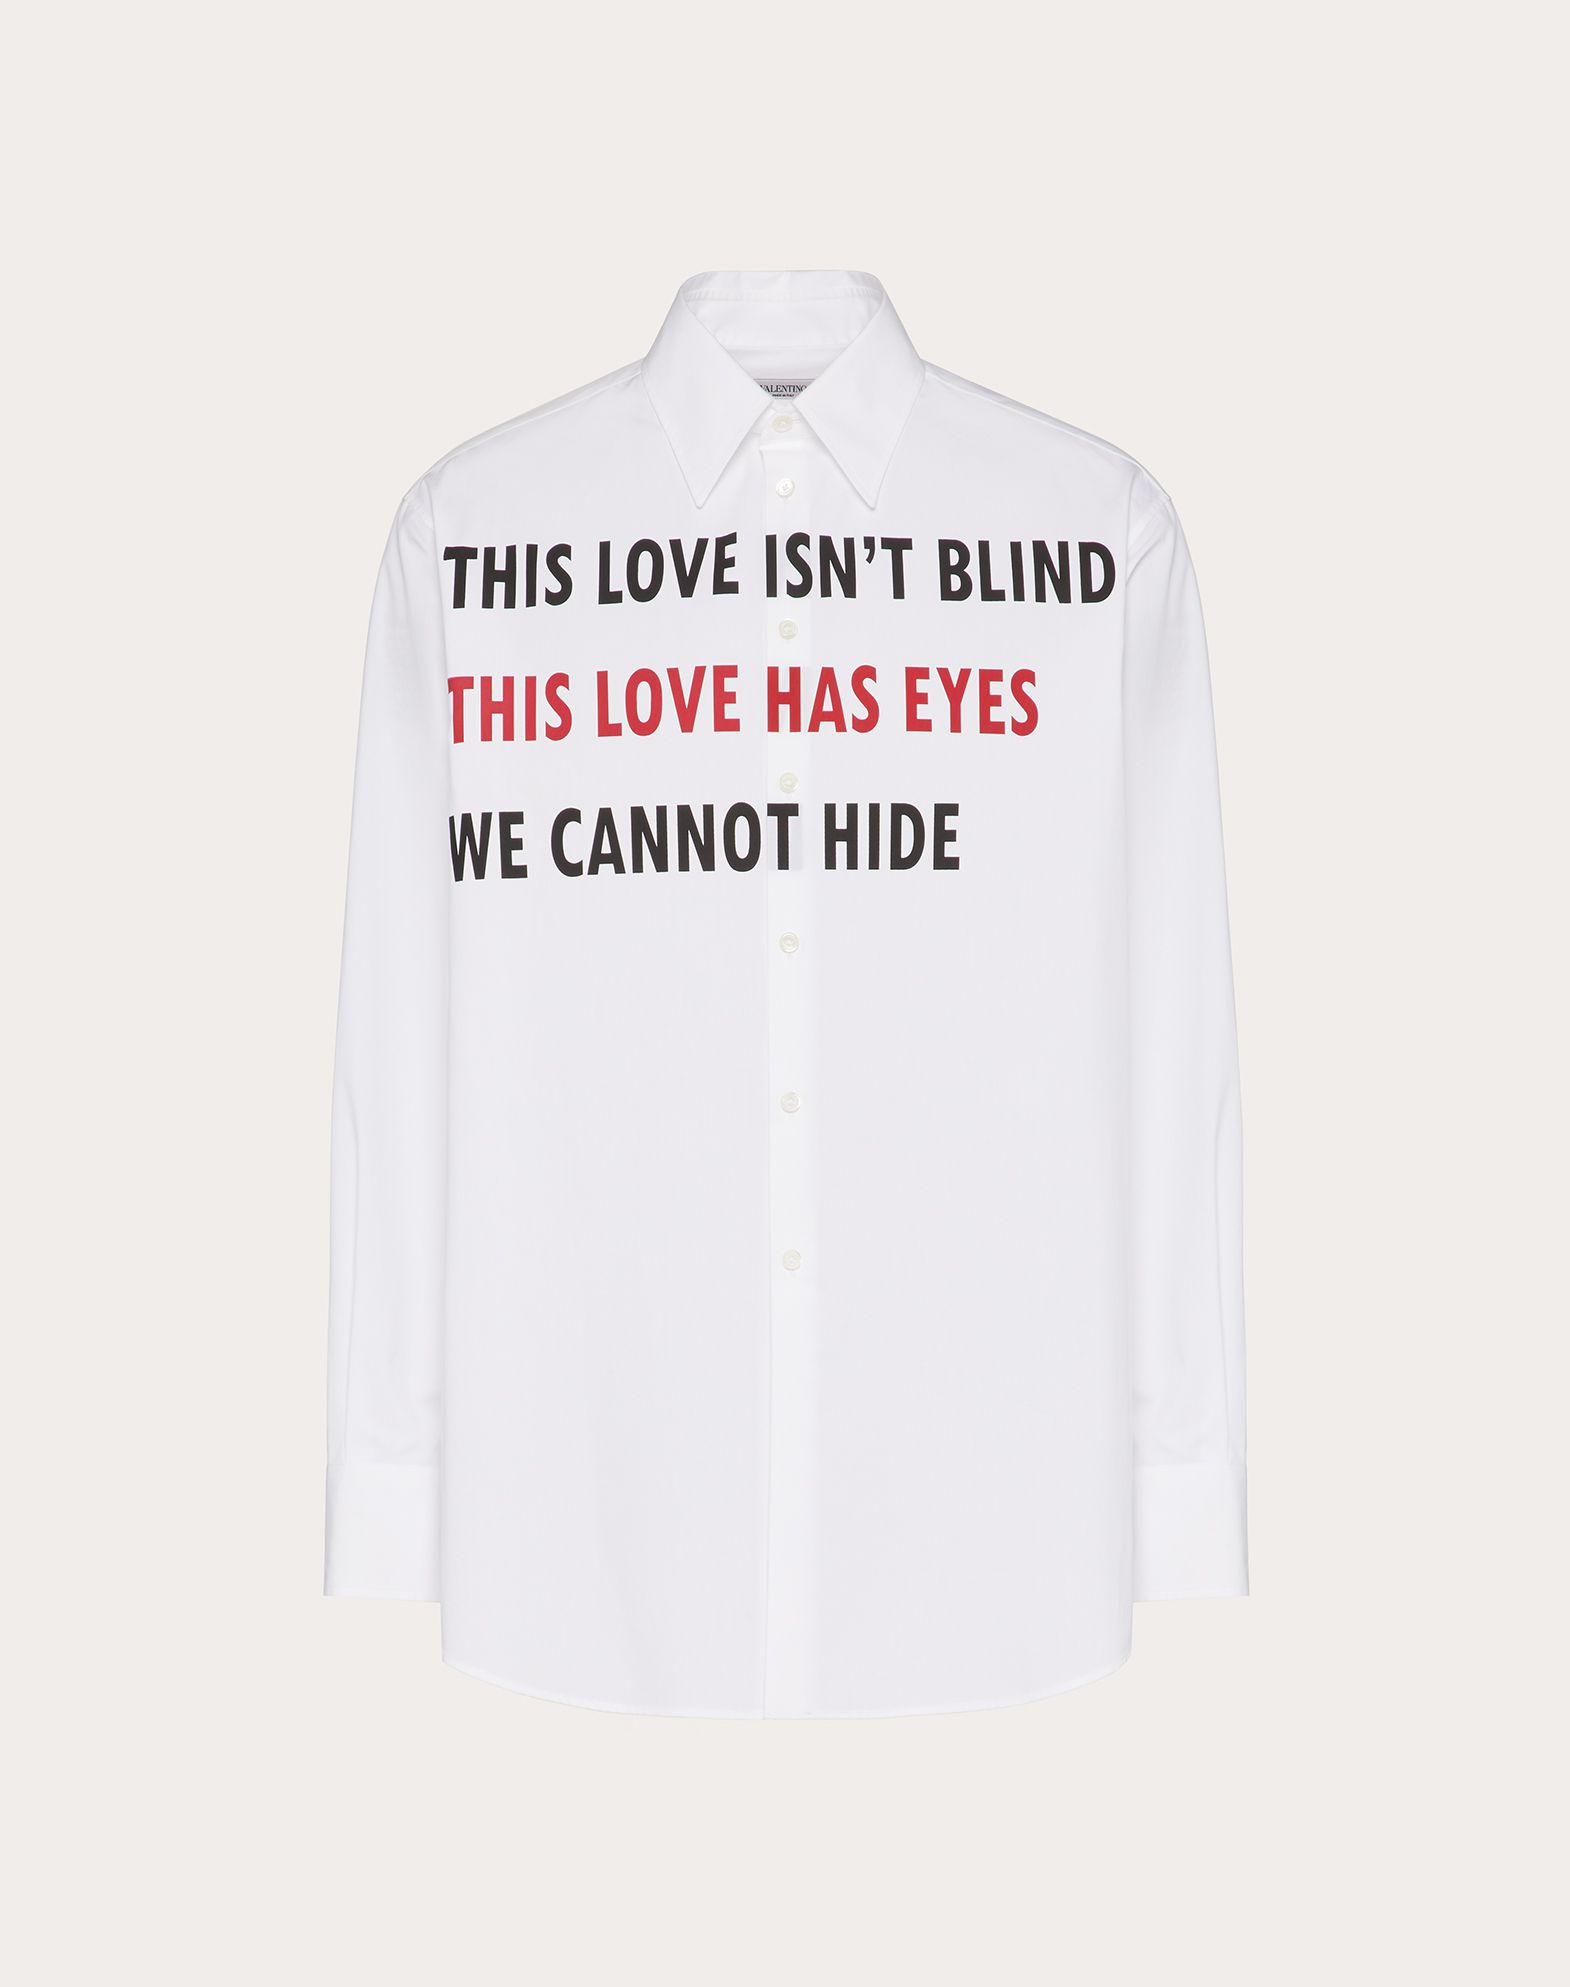 VALENTINO ON LOVE SHIRT